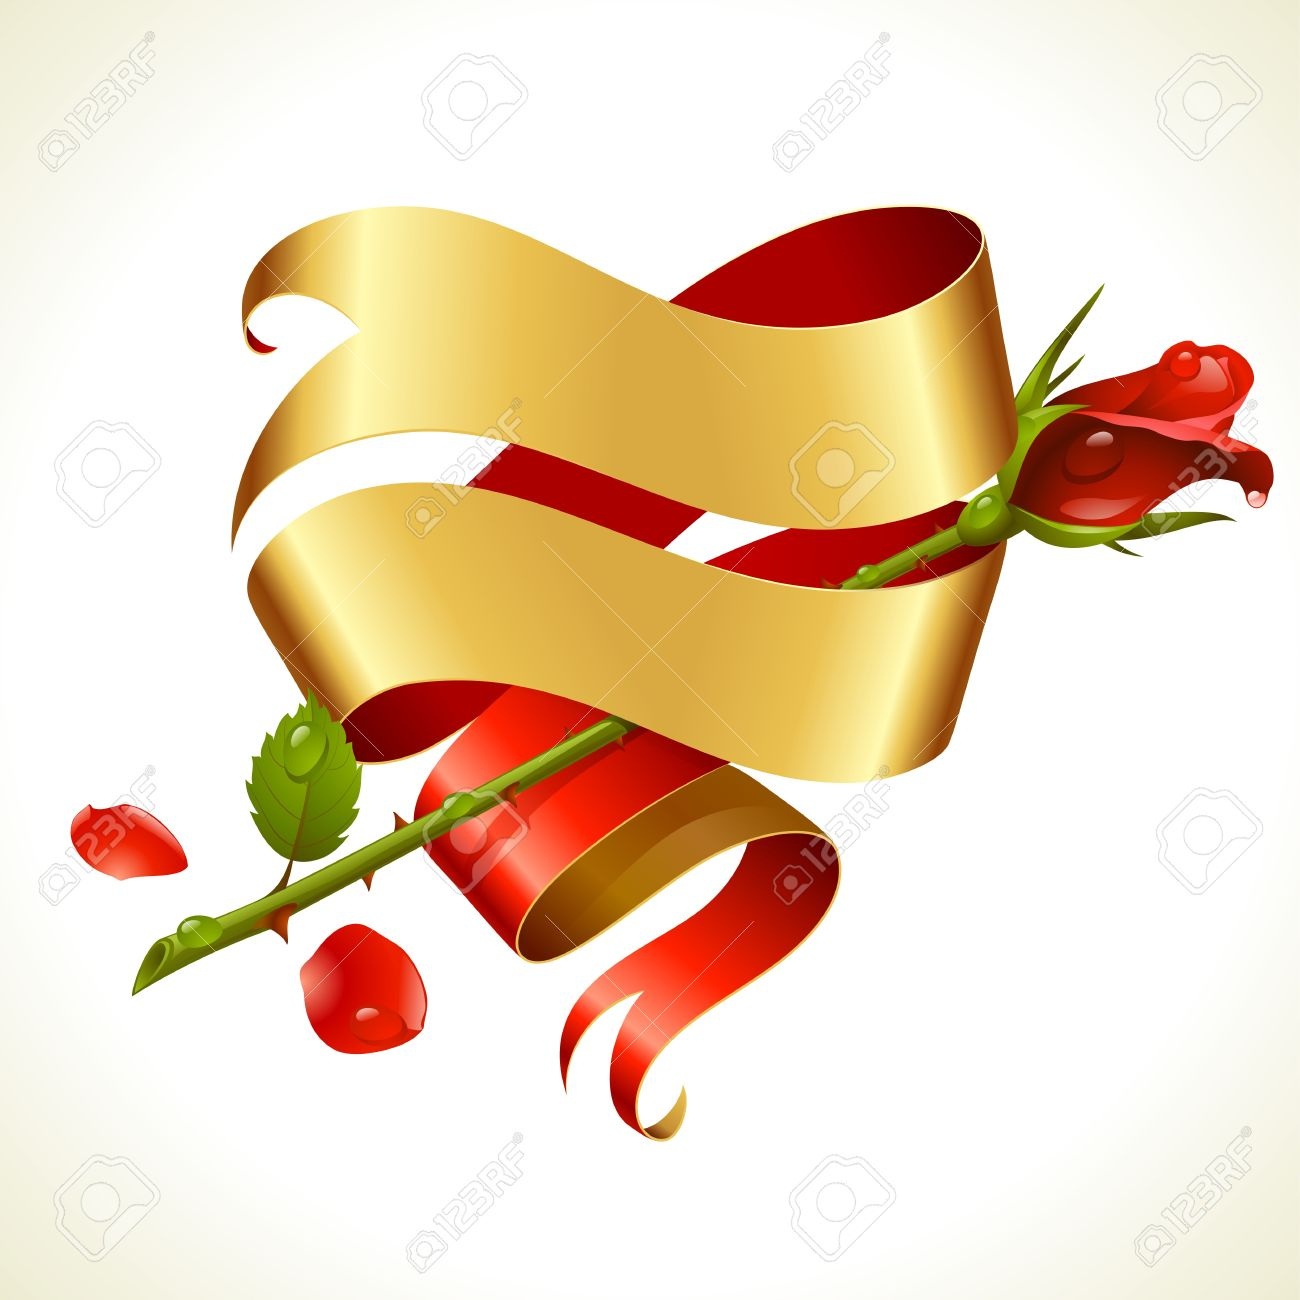 Ribbon banner in the shape of heart and red rose. Valentine's Day Card. Stock Vector - 17567094